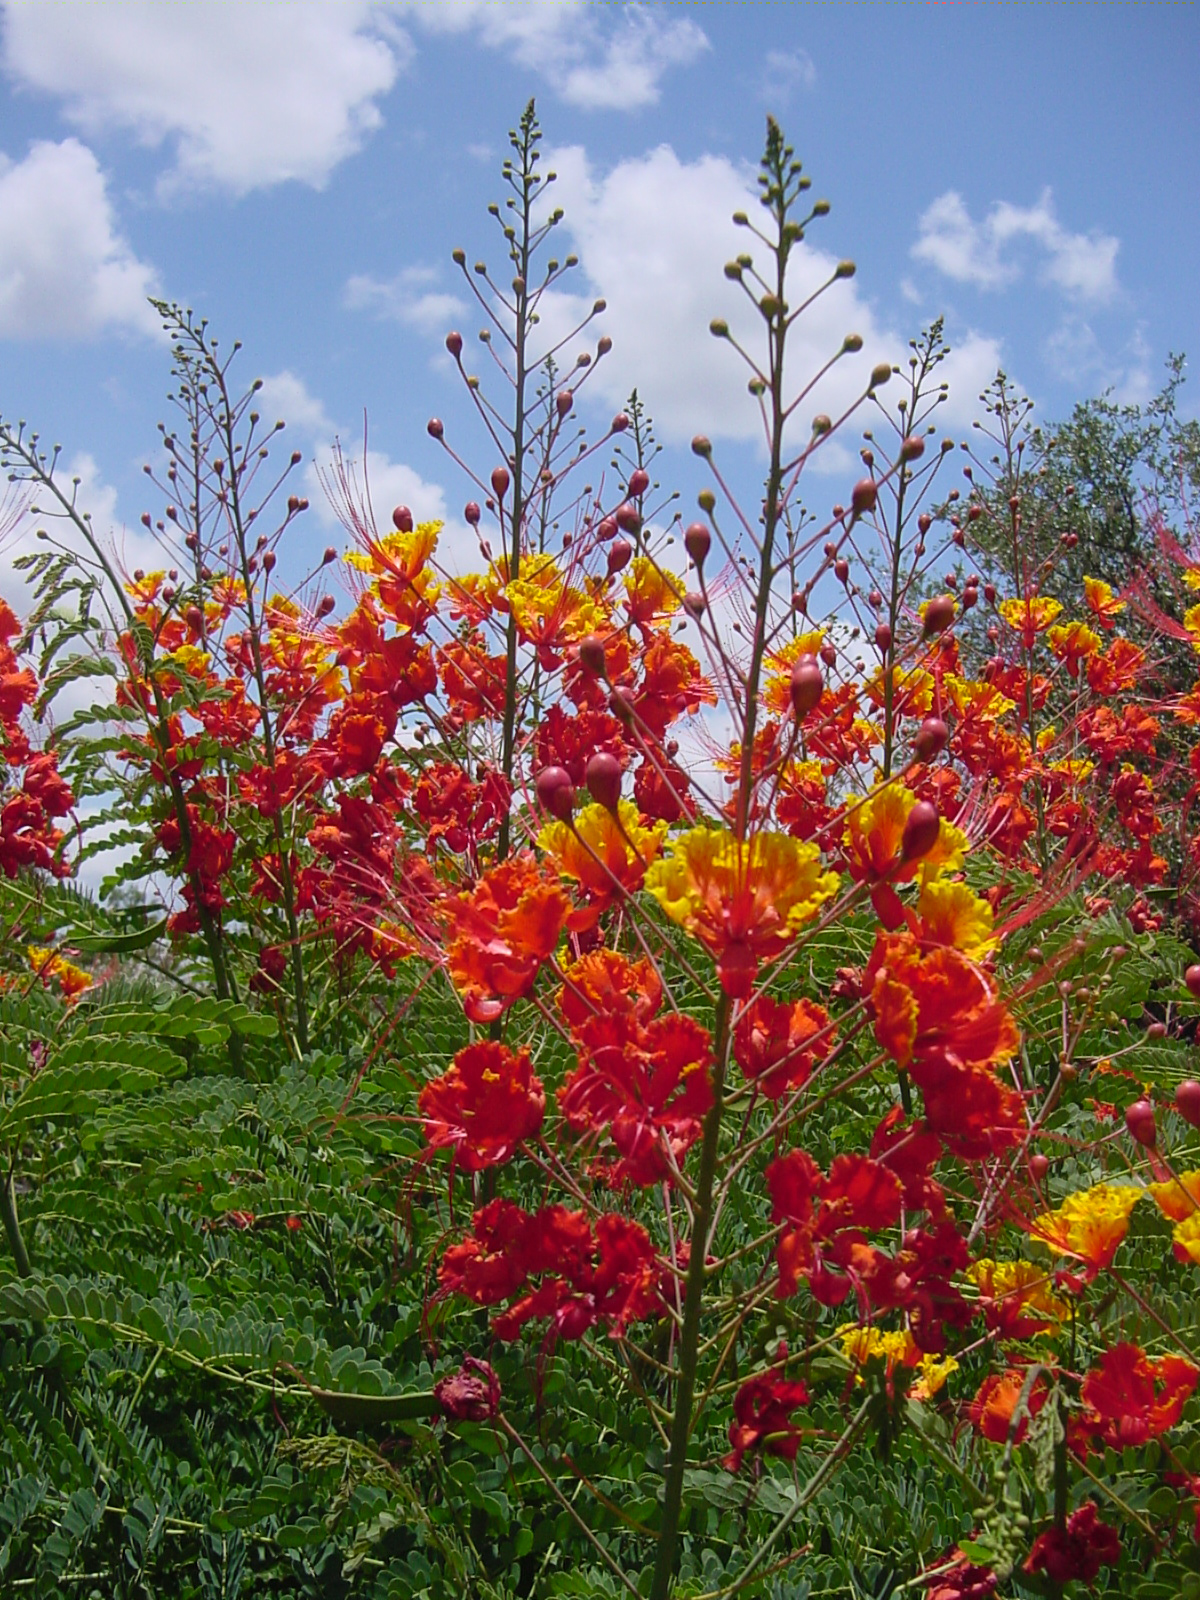 For Images Go To Http Horticulture Tamu Edu 7998 Superstar And Search Pride Of Barbados